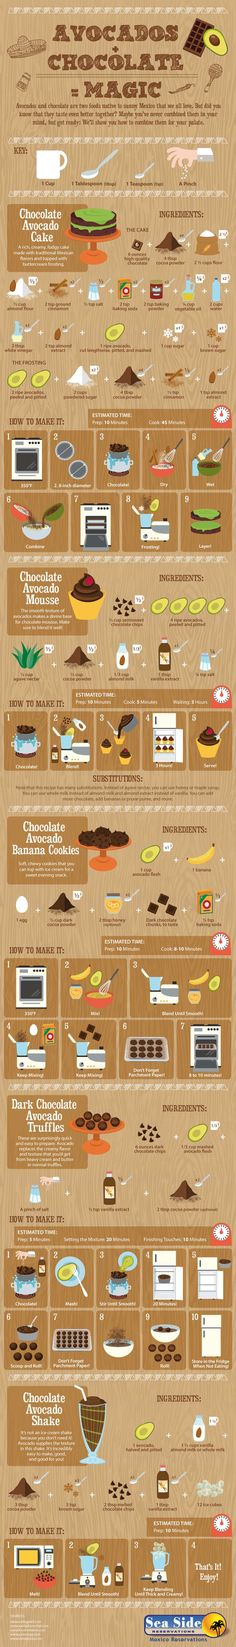 Avocados Plus Chocolate = Magic! #infographic #Chocolate #Cake #Food